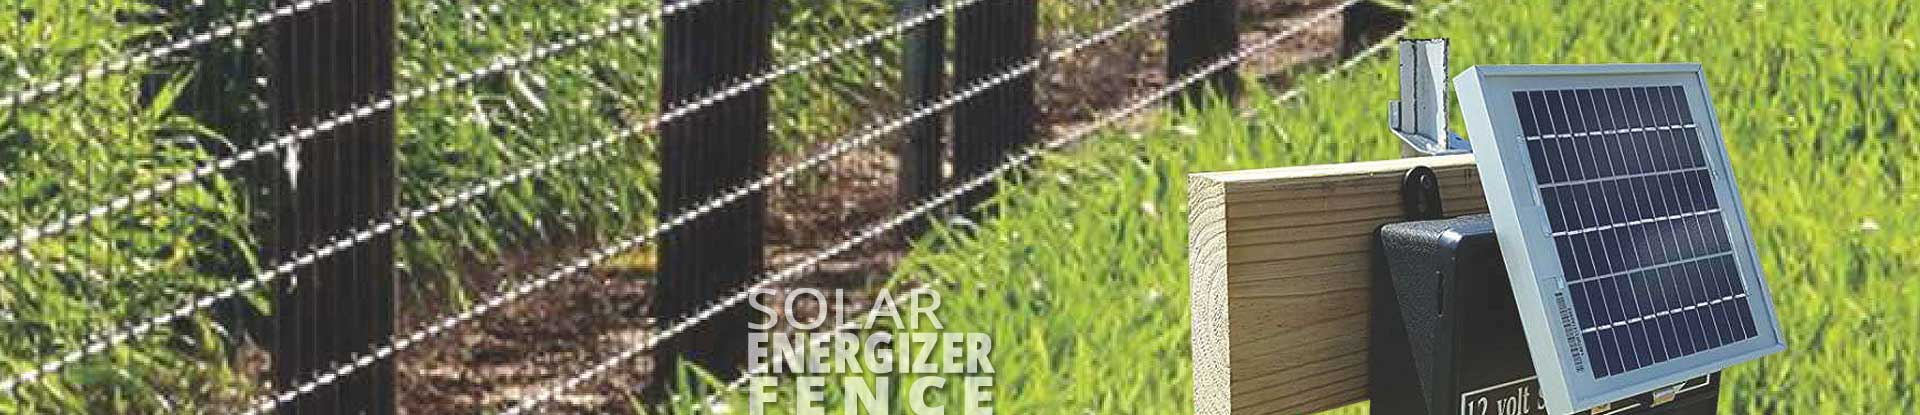 Solar Fence Energizer | Captain Polyplast Ltd.